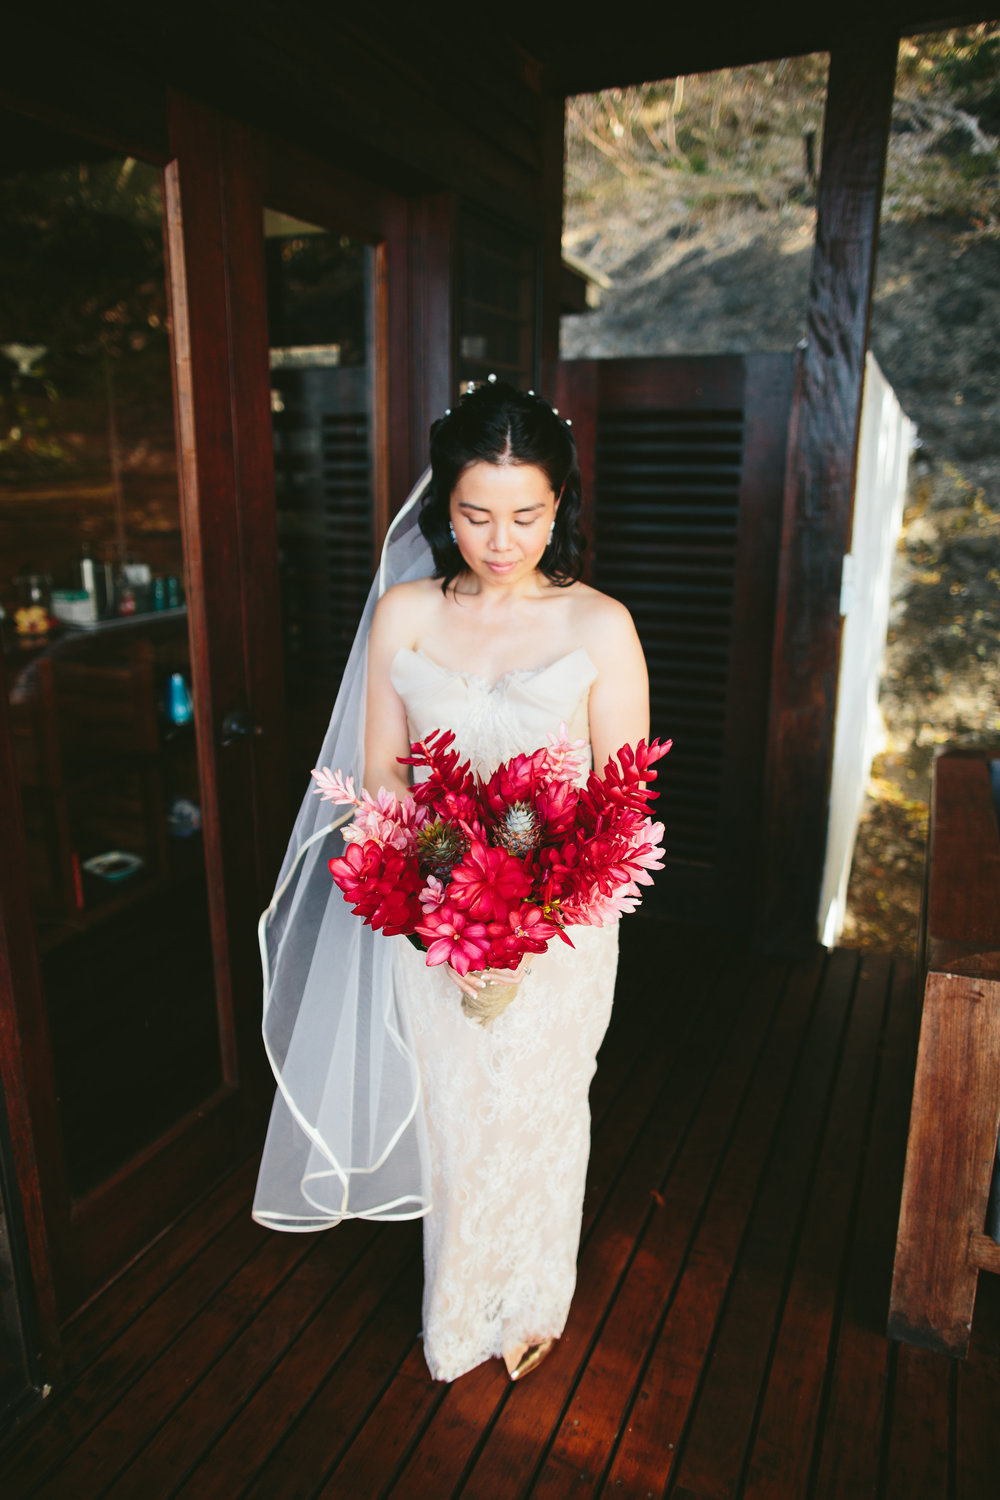 Red Ginger Bouquet - Fiji Wedding Elopement - The Remote Resort Fiji Islands